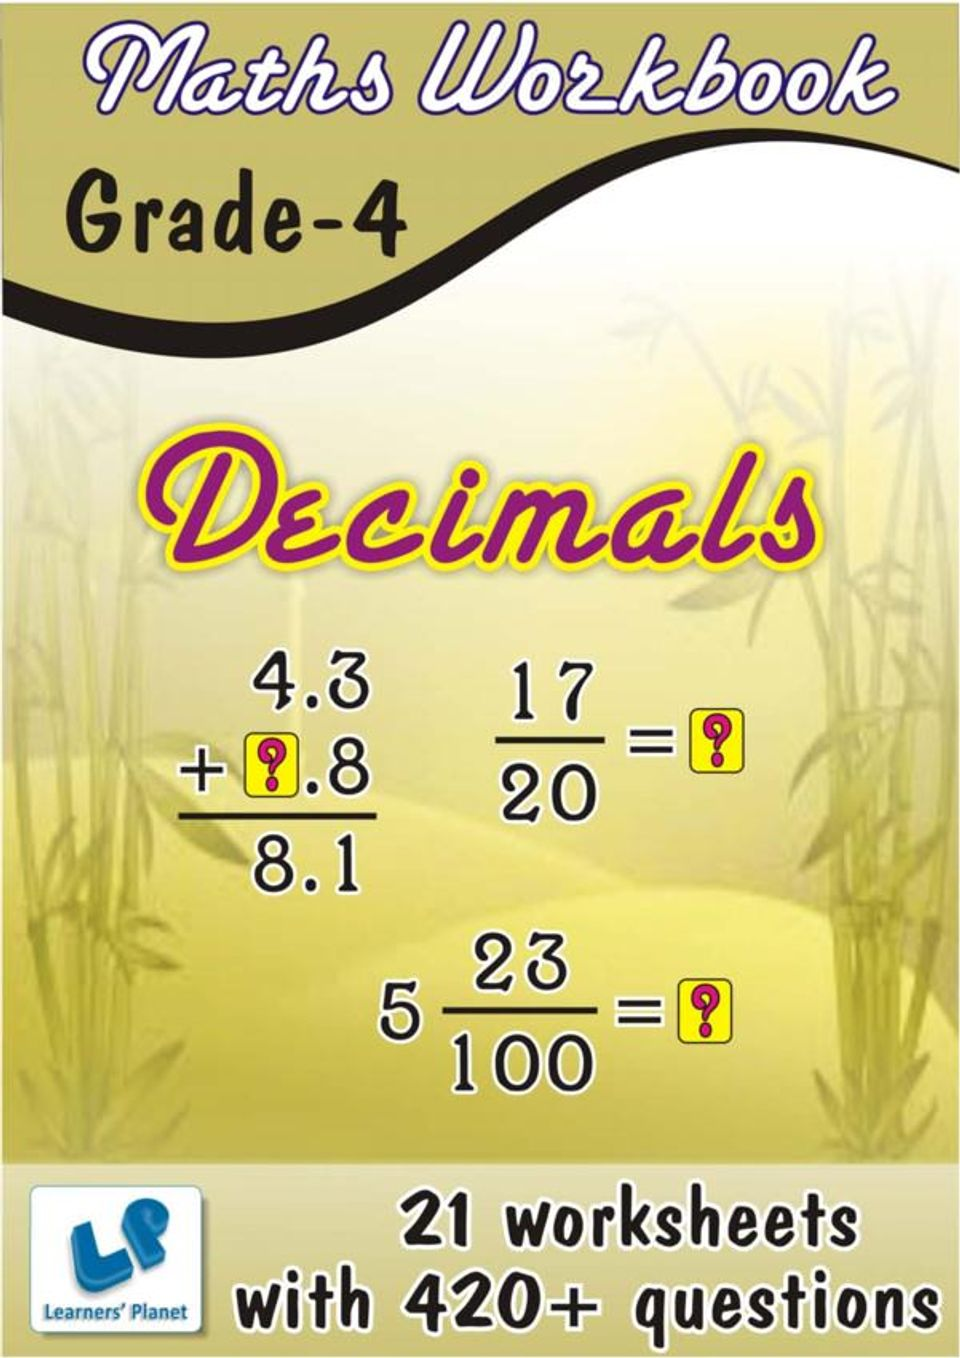 hight resolution of Get your digital copy of Grade-4-Maths-Decimals-Workbook issue